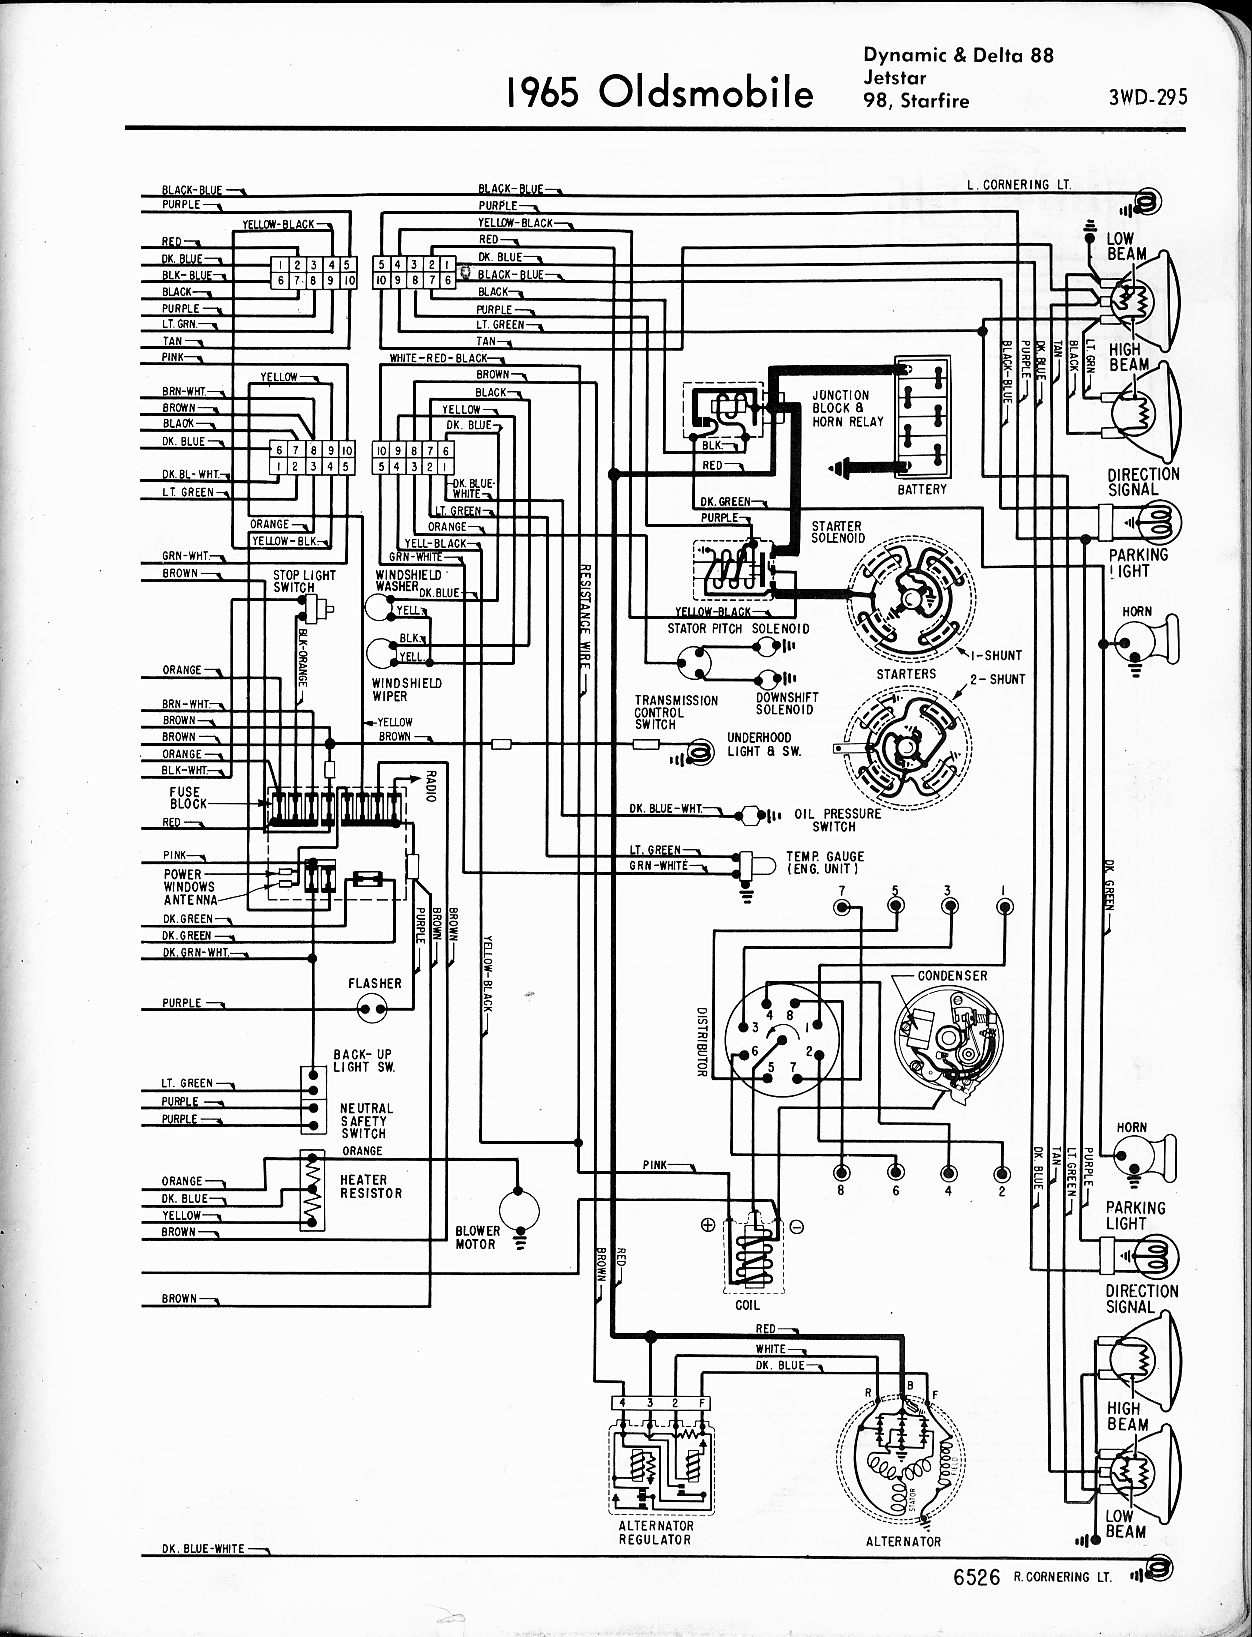 Volvo Penta Sensor Location likewise C5 Corvette Alternator Wiring likewise Vw Beetle Gear Shift Diagram together with 1966 Mustang Wiring Diagrams likewise Trl. on 1969 vw beetle fuse box